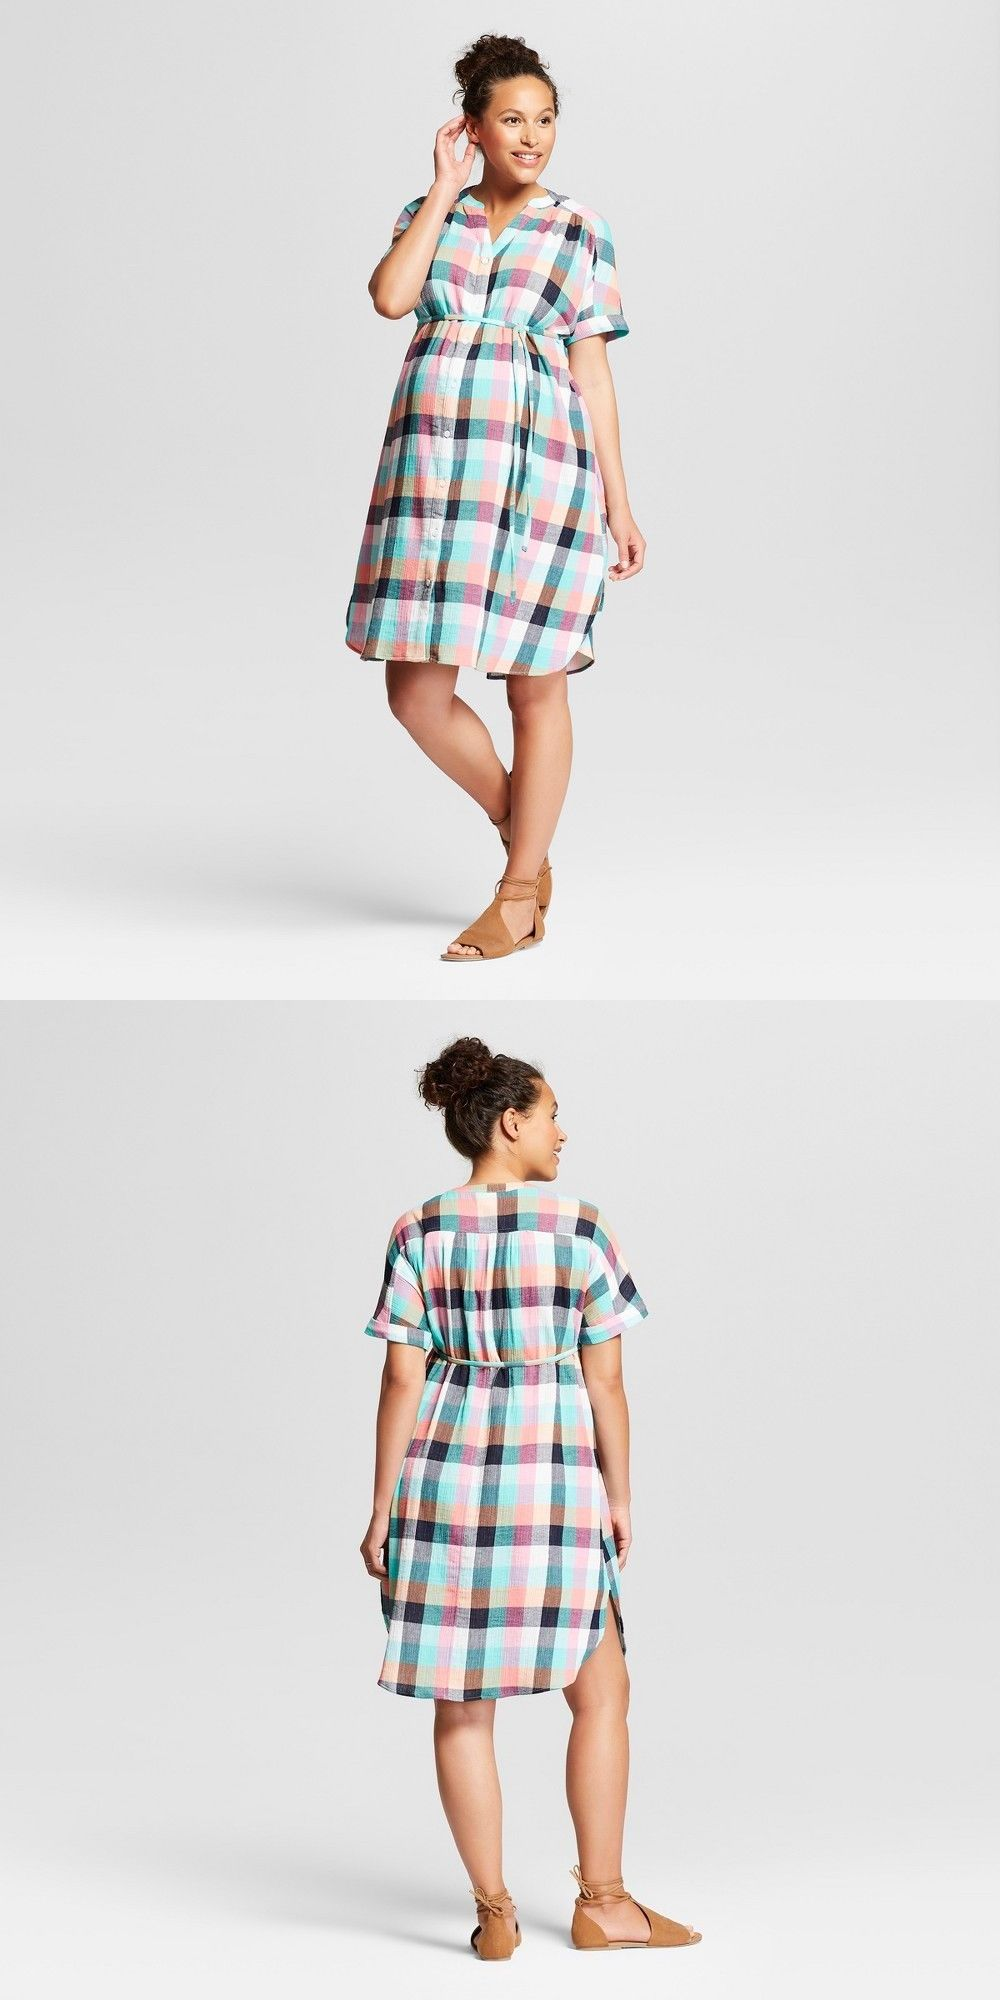 51b804e841 Dresses 11534: Ingrid And Isabel Womens Plaid Dolman Maternity Tie Waist  Shirt Dress New W Tags -> BUY IT NOW ONLY: $14.95 on #eBay #dresses #ingrid  #isabel ...